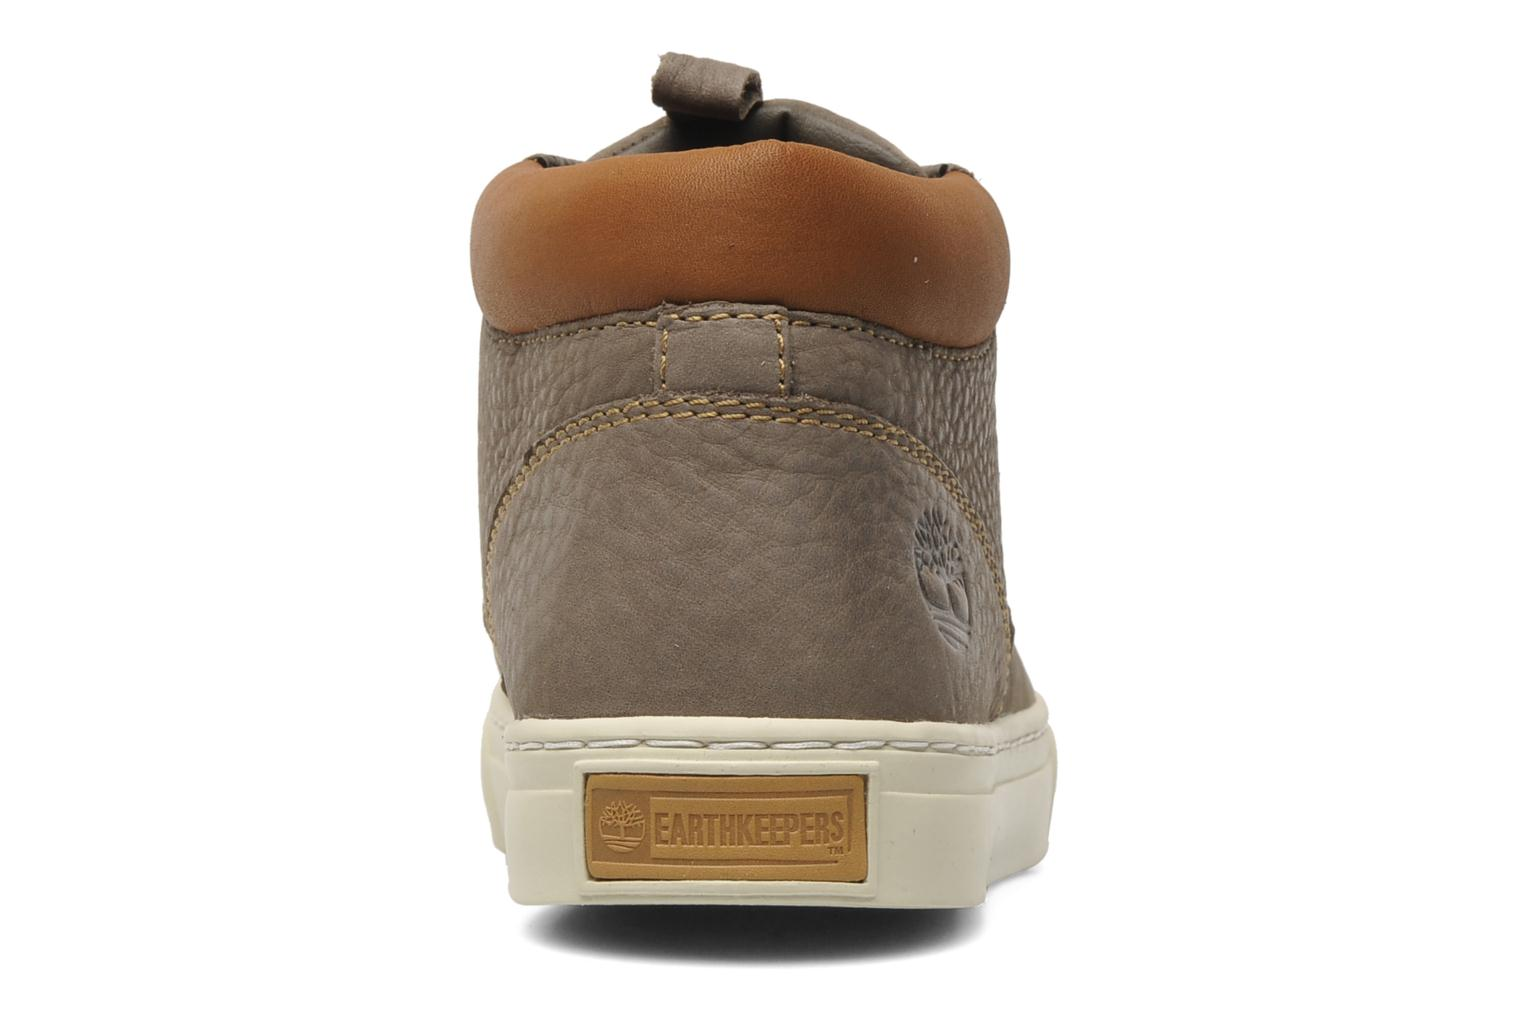 Earthkeepers 2.0 Cupsole Chukka Brown Tumbled Nubuck